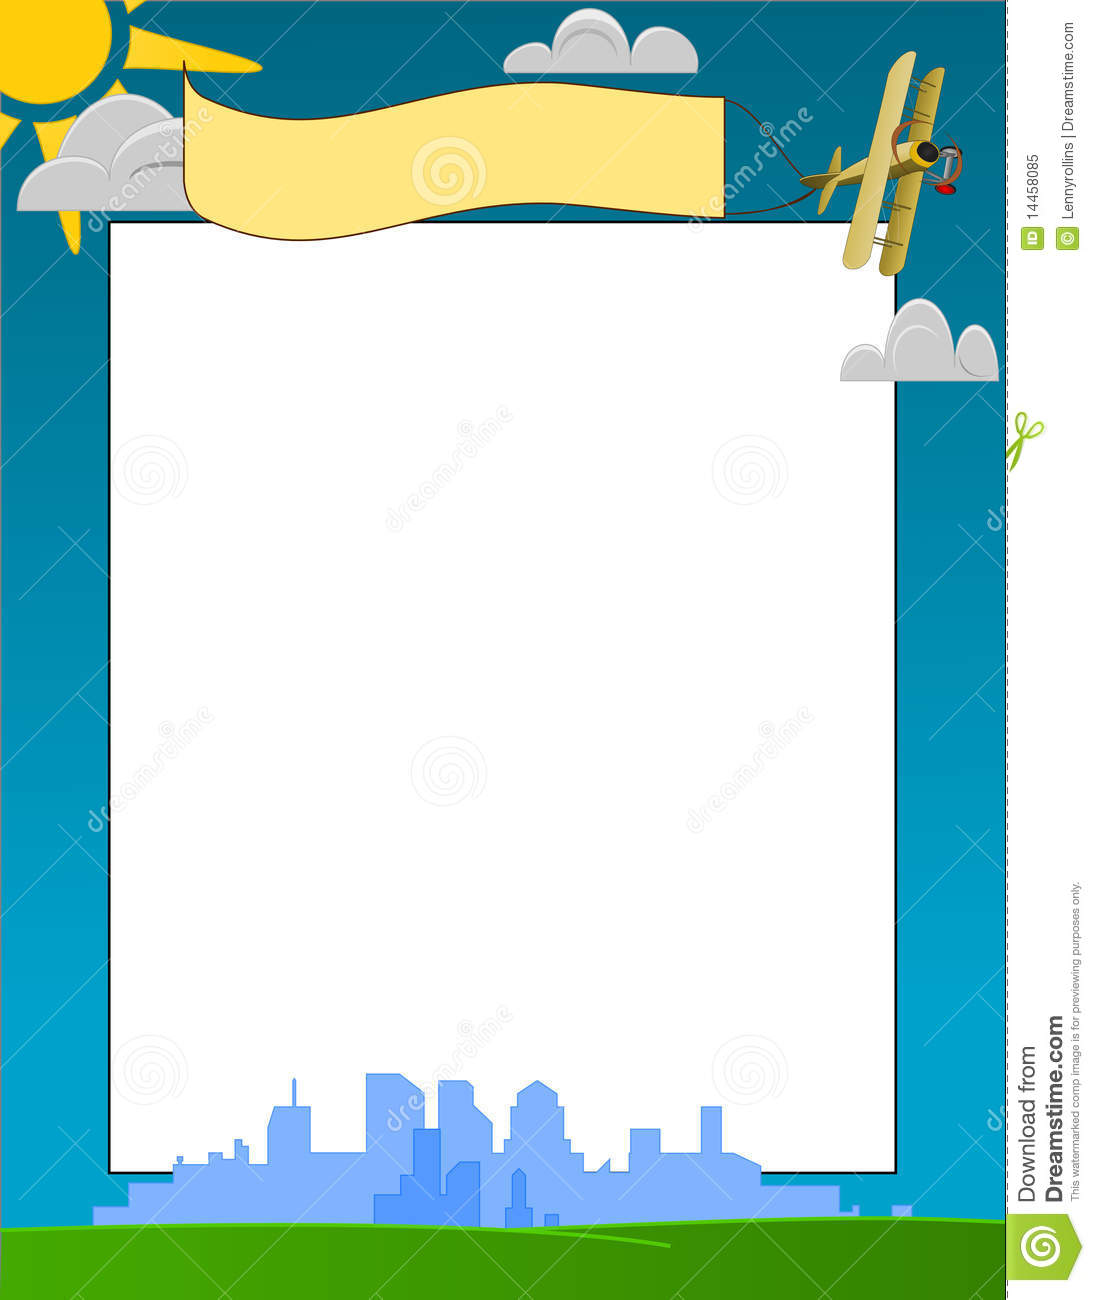 Vector City Skyline And Sunny Day Frame Stock Vector - Illustration ...